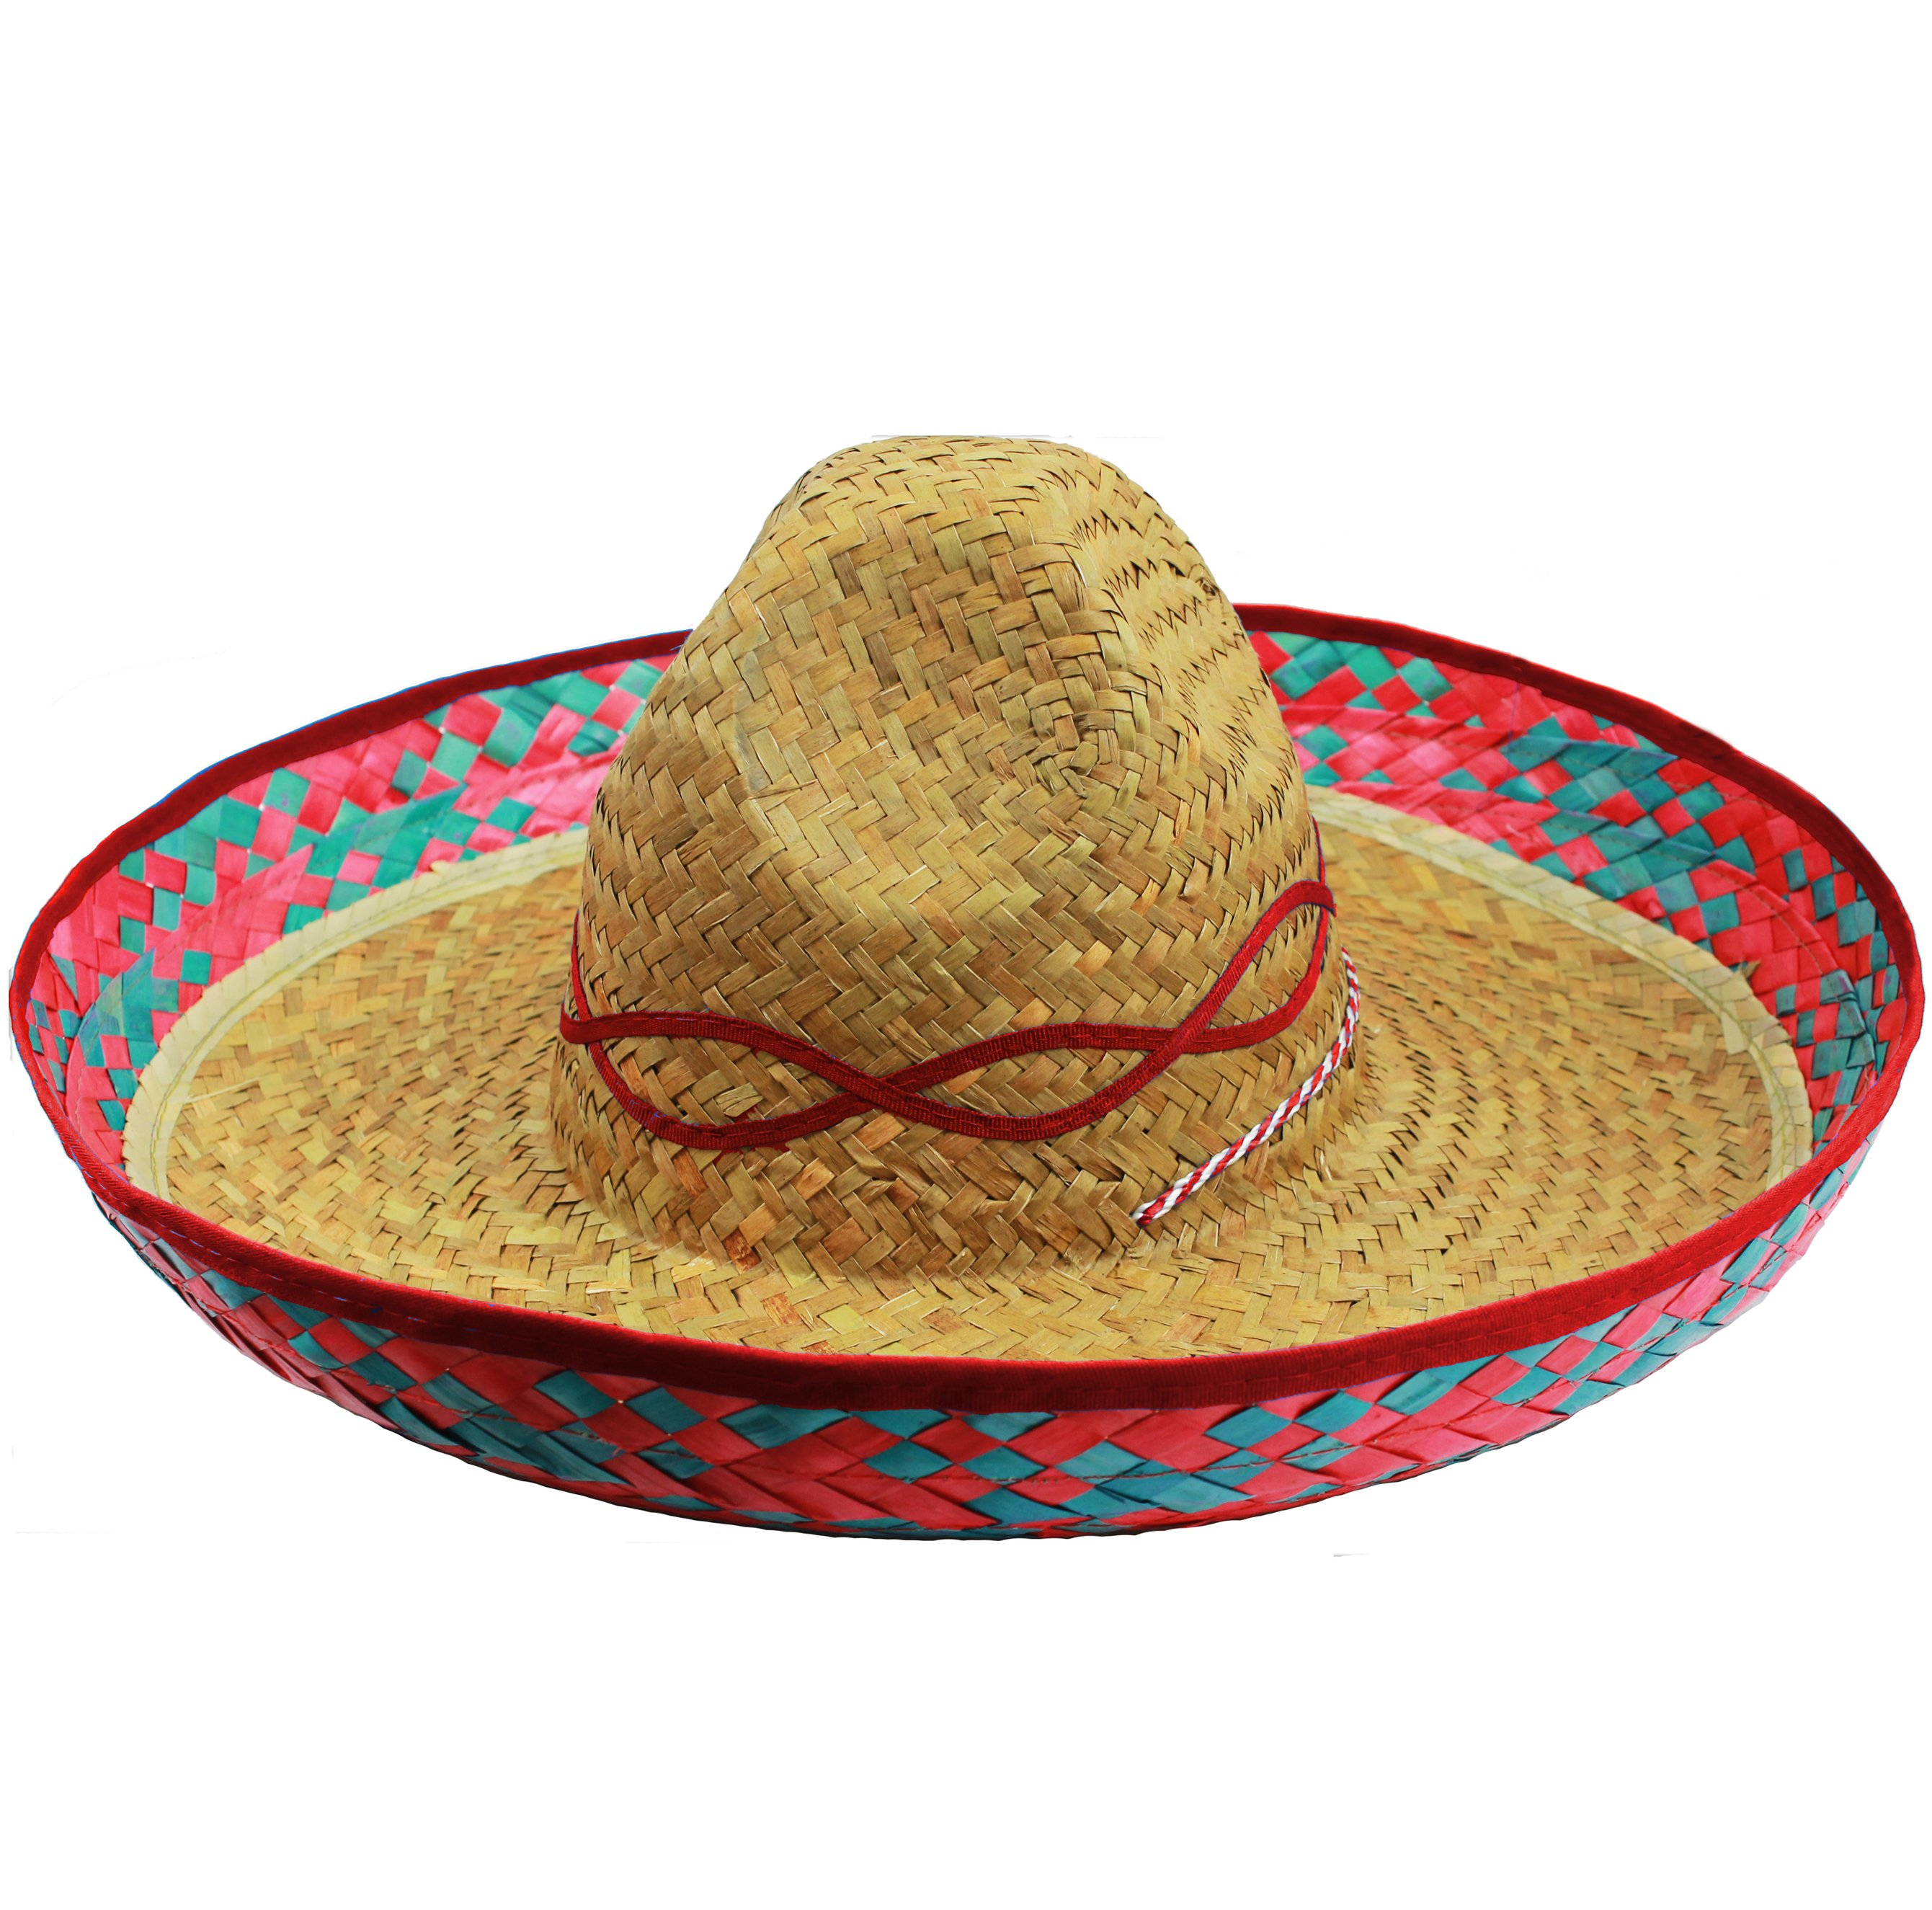 mayor descuento gran descuento costo moderado Mexican Sombrero Straw Hat with Red Design